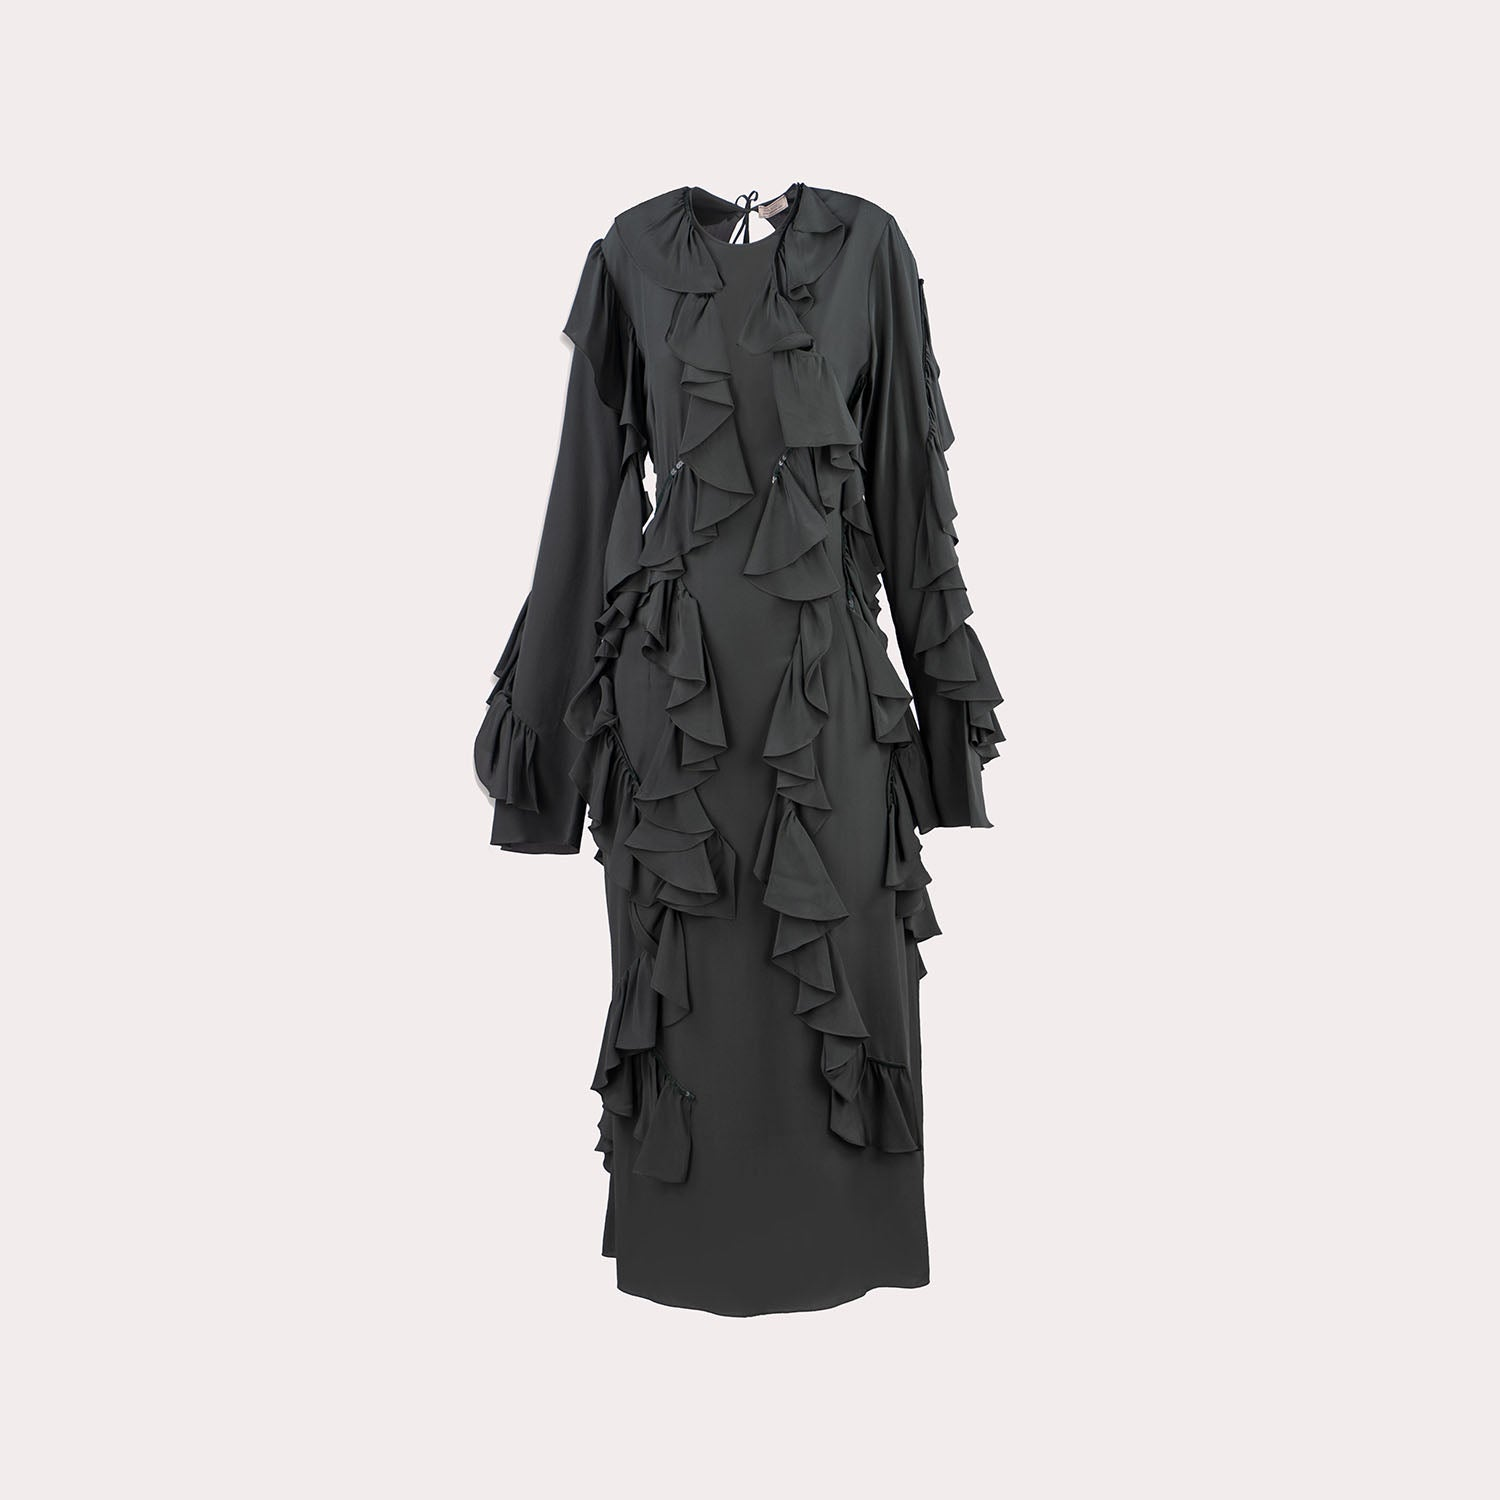 Ruffled Long Sleeve Dress